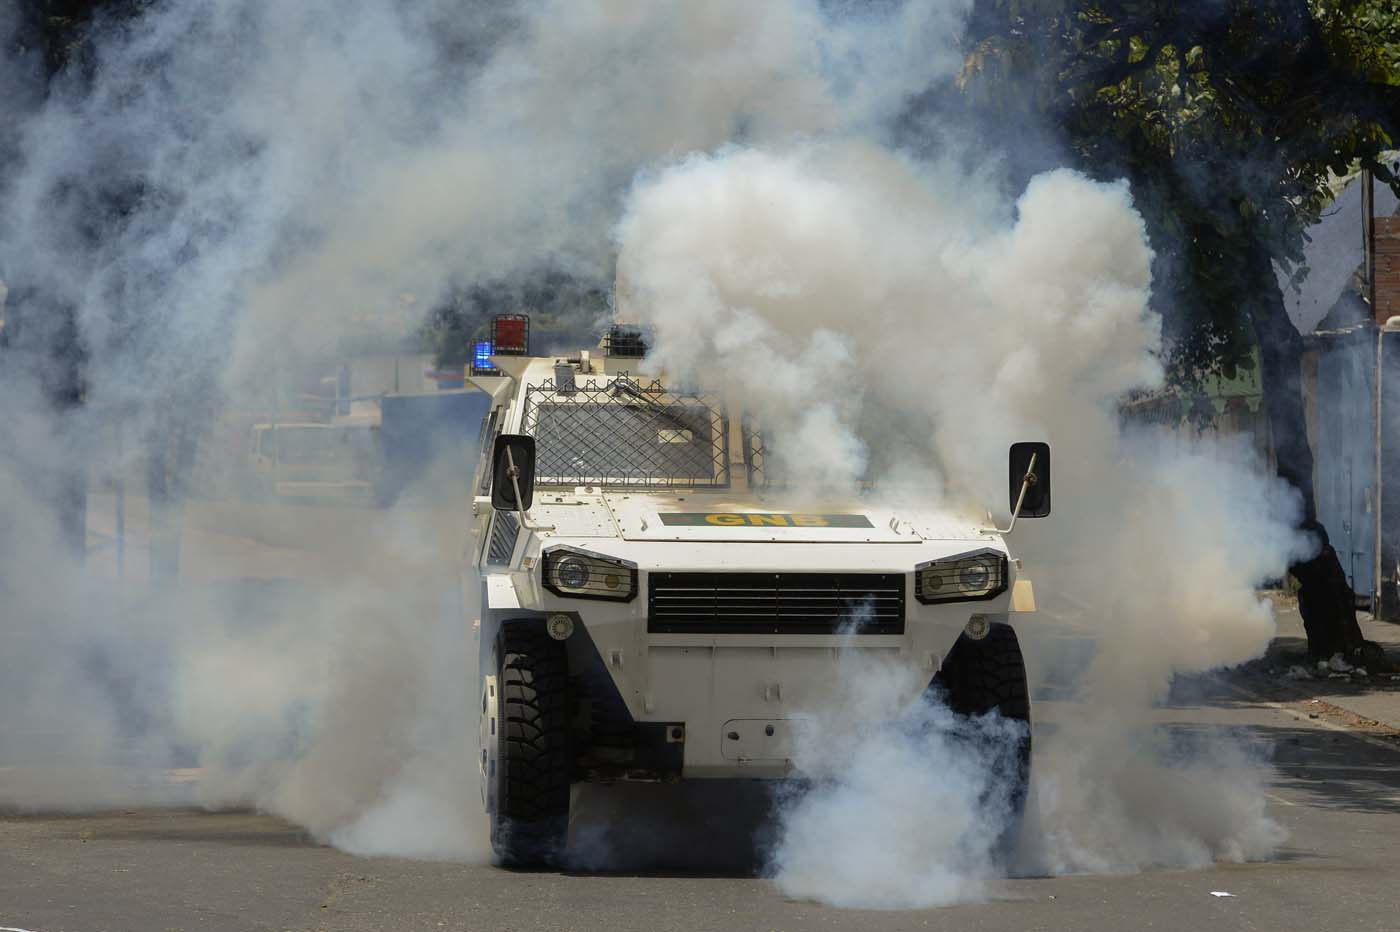 Riot police in an armoured vehicle try to disperse demonstrators during a protest against Venezuelan President Nicolas Maduro, in Caracas on April 20, 2017. Venezuelan riot police fired tear gas Thursday at groups of protesters seeking to oust President Nicolas Maduro, who have vowed new mass marches after a day of deadly unrest. Police in western Caracas broke up scores of opposition protesters trying to join a larger march, though there was no immediate repeat of Wednesday's violent clashes, which left three people dead. / AFP PHOTO / Federico PARRA